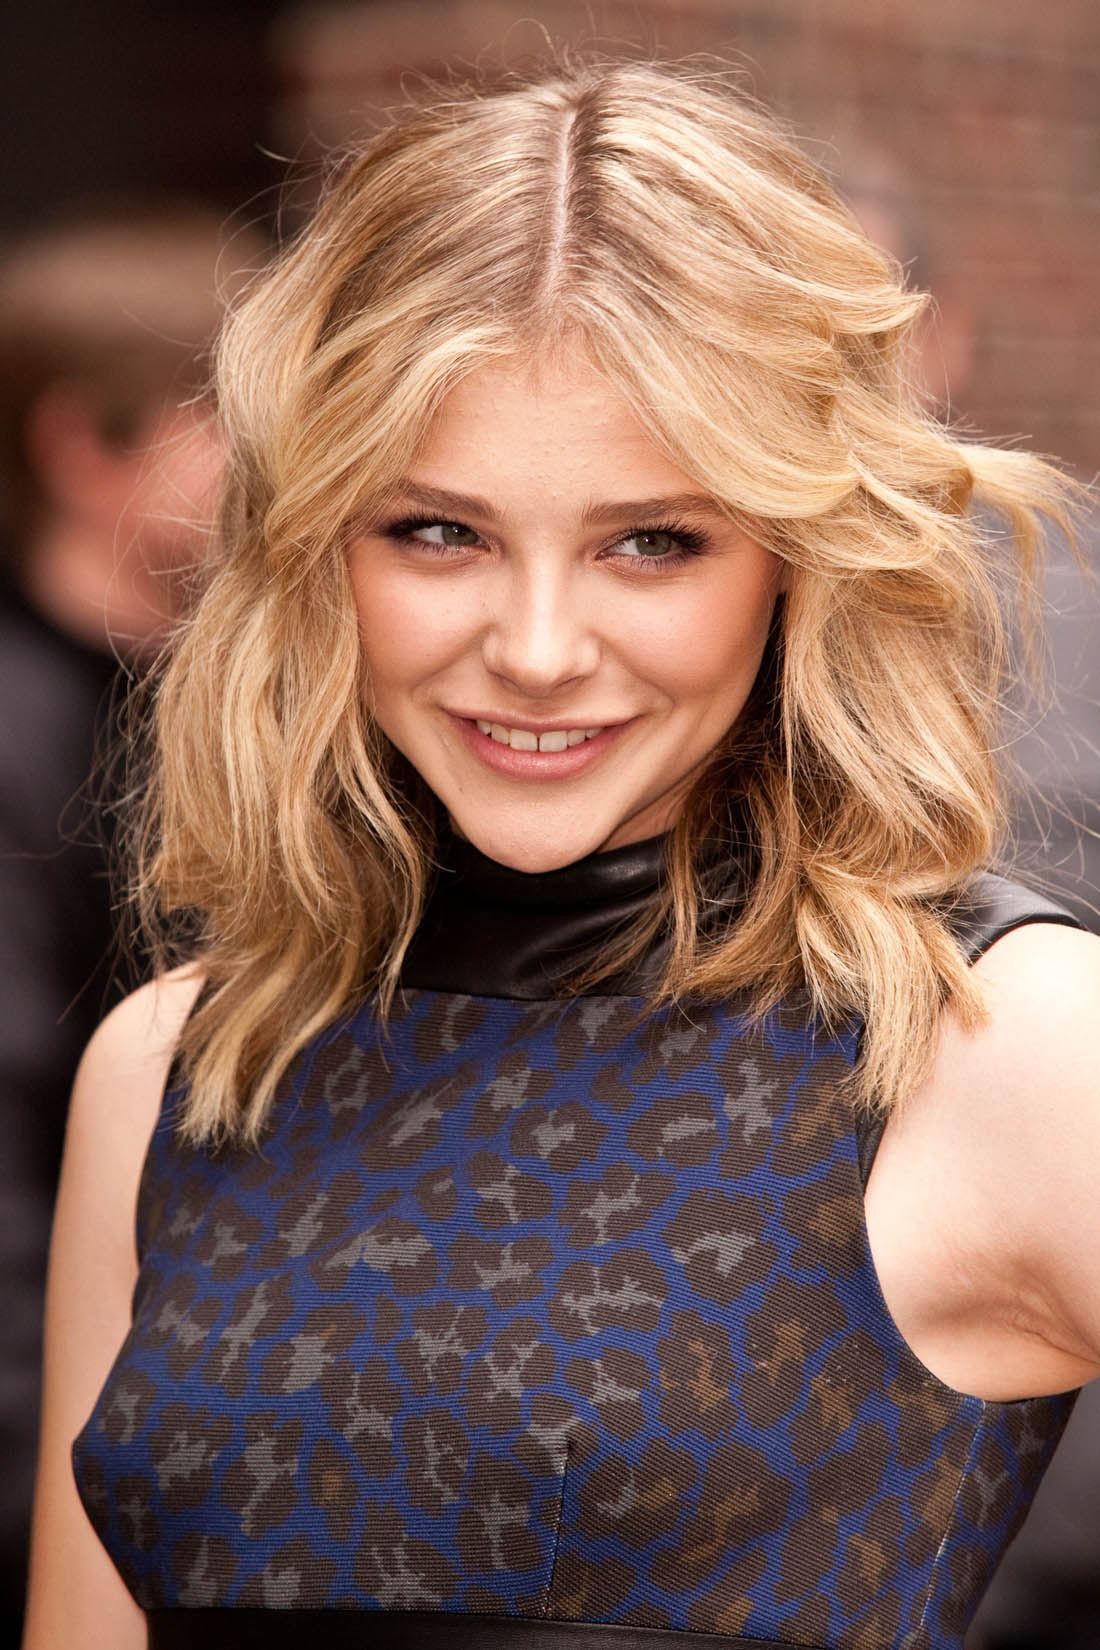 image - chloe grace moretz mix 4 | victorious roleplaying wiki